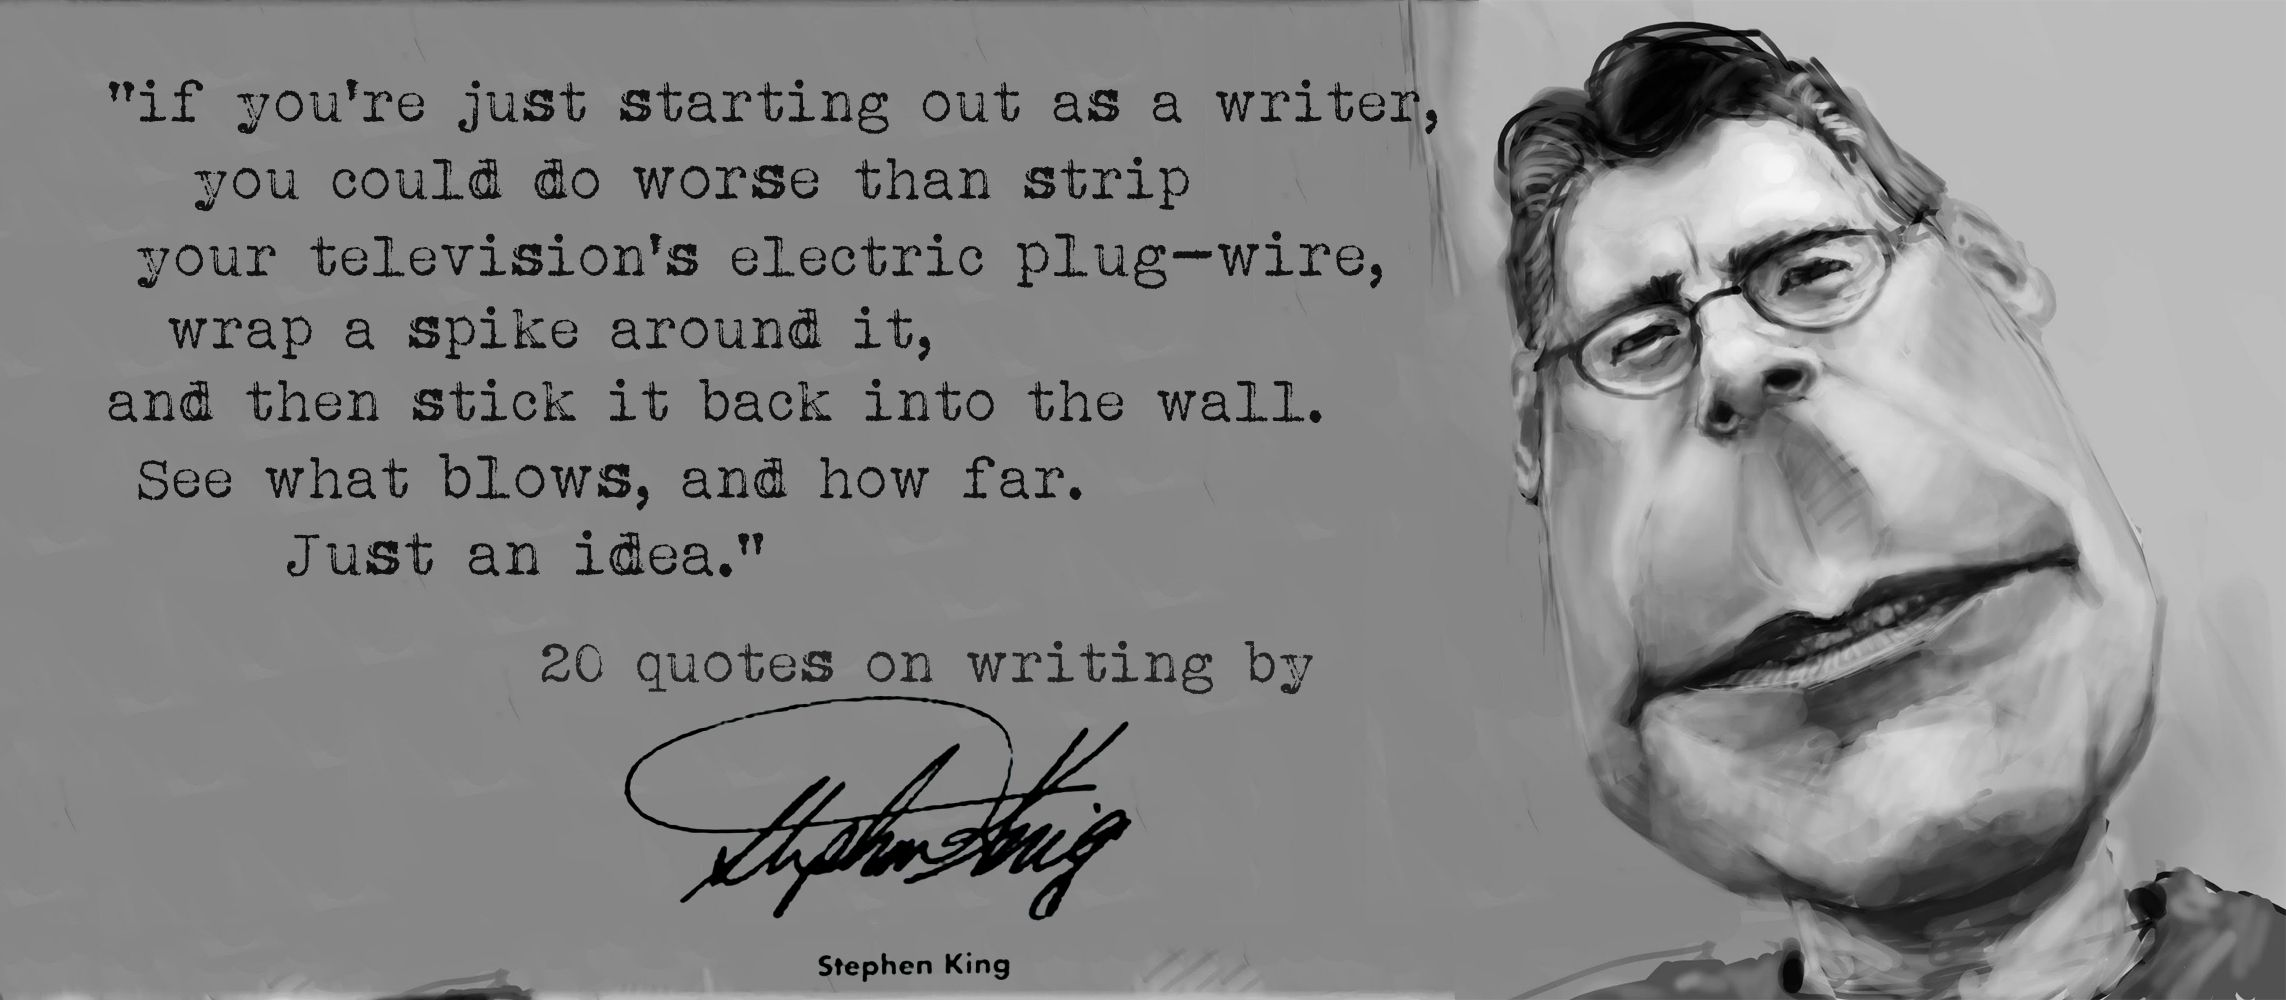 stephen king's 20 quotes on writing | quotes for writers and readers